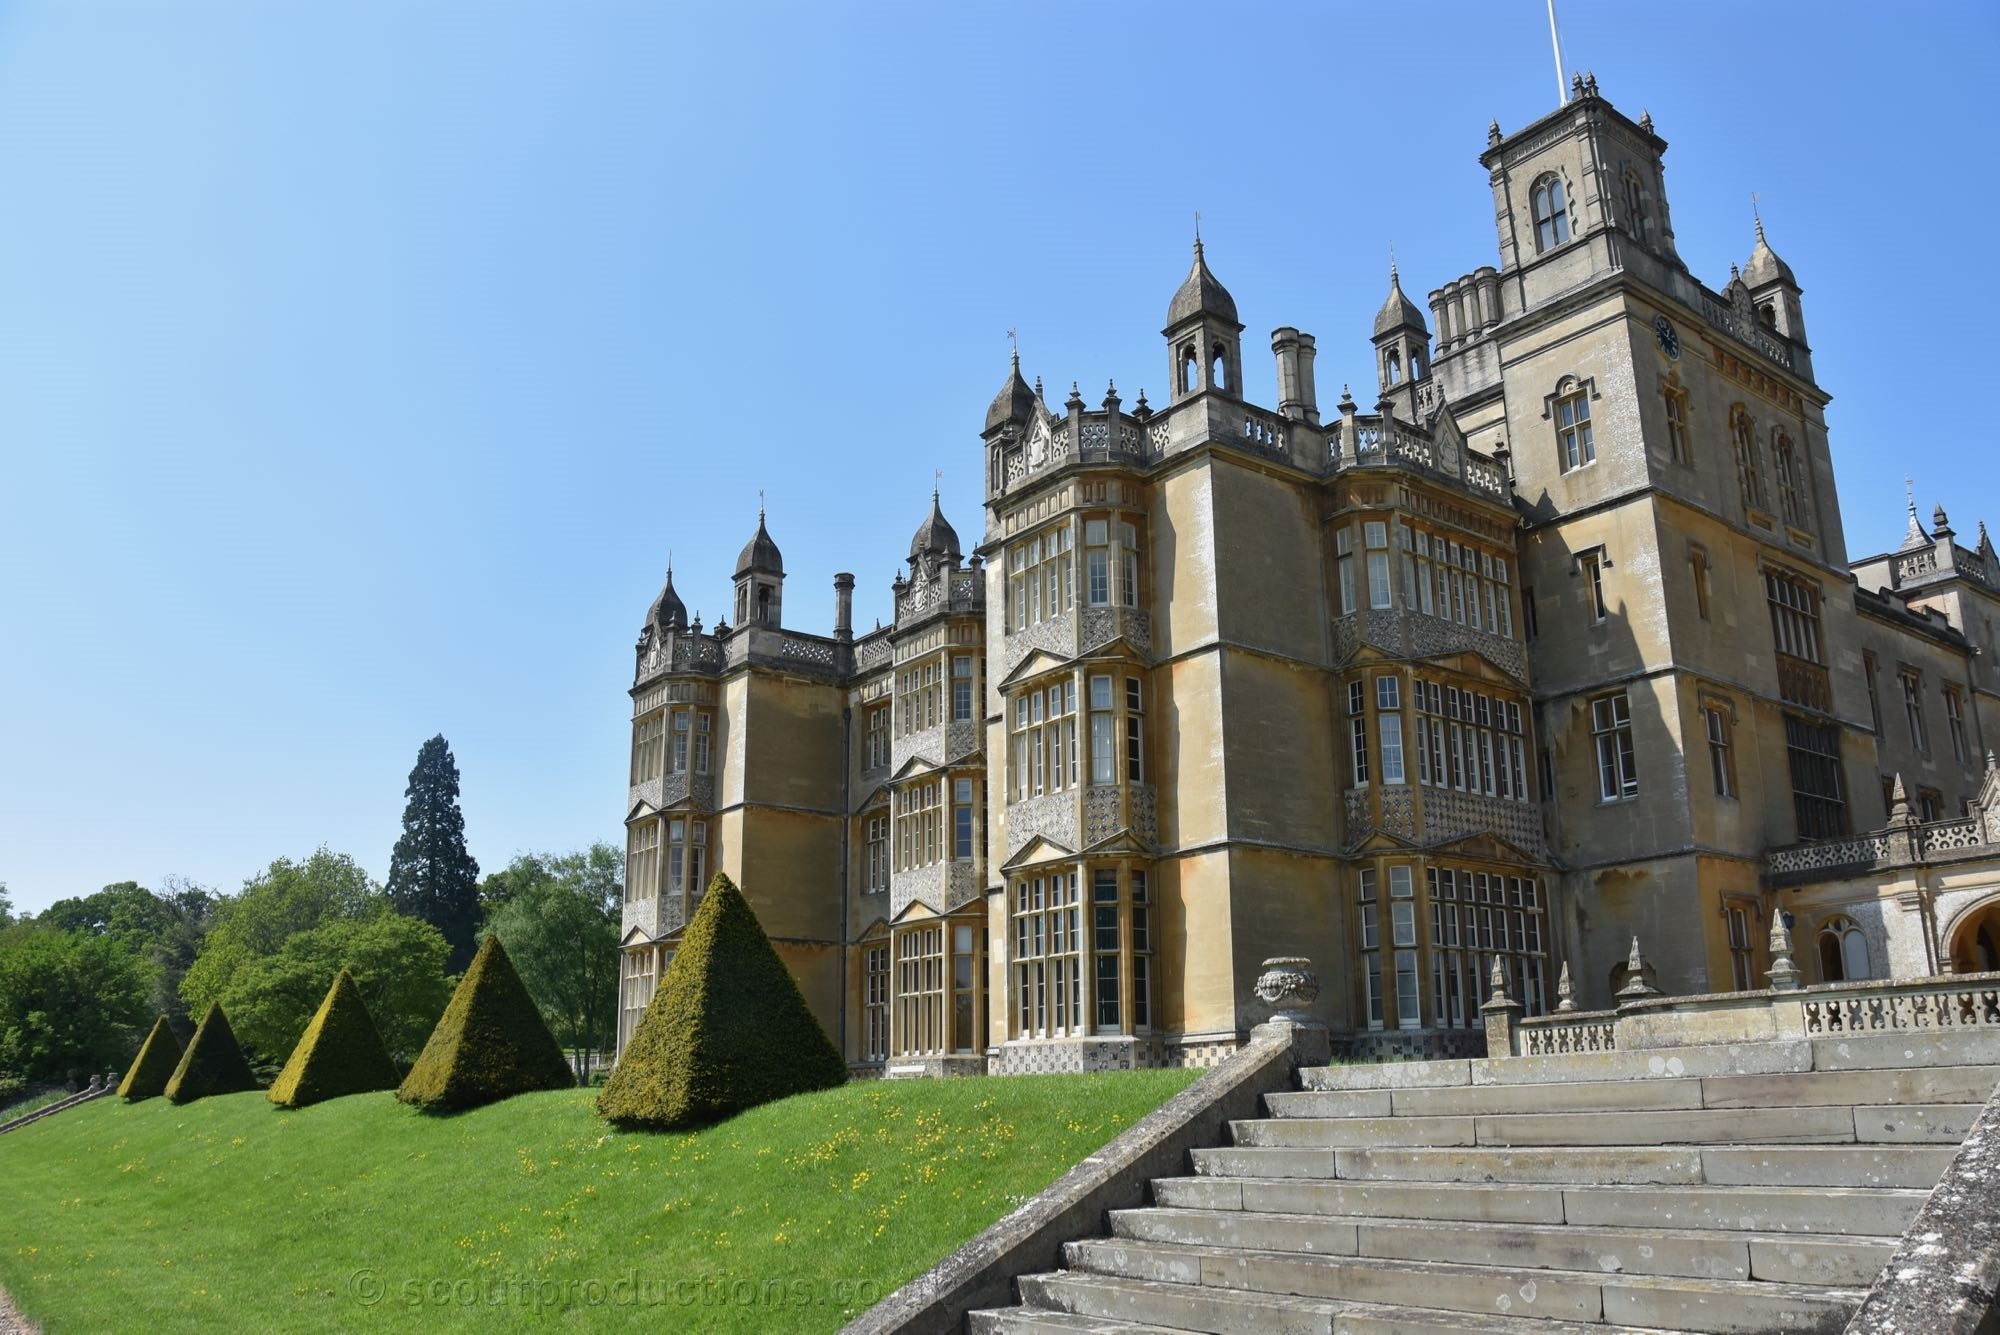 Stately Homes & Palaces